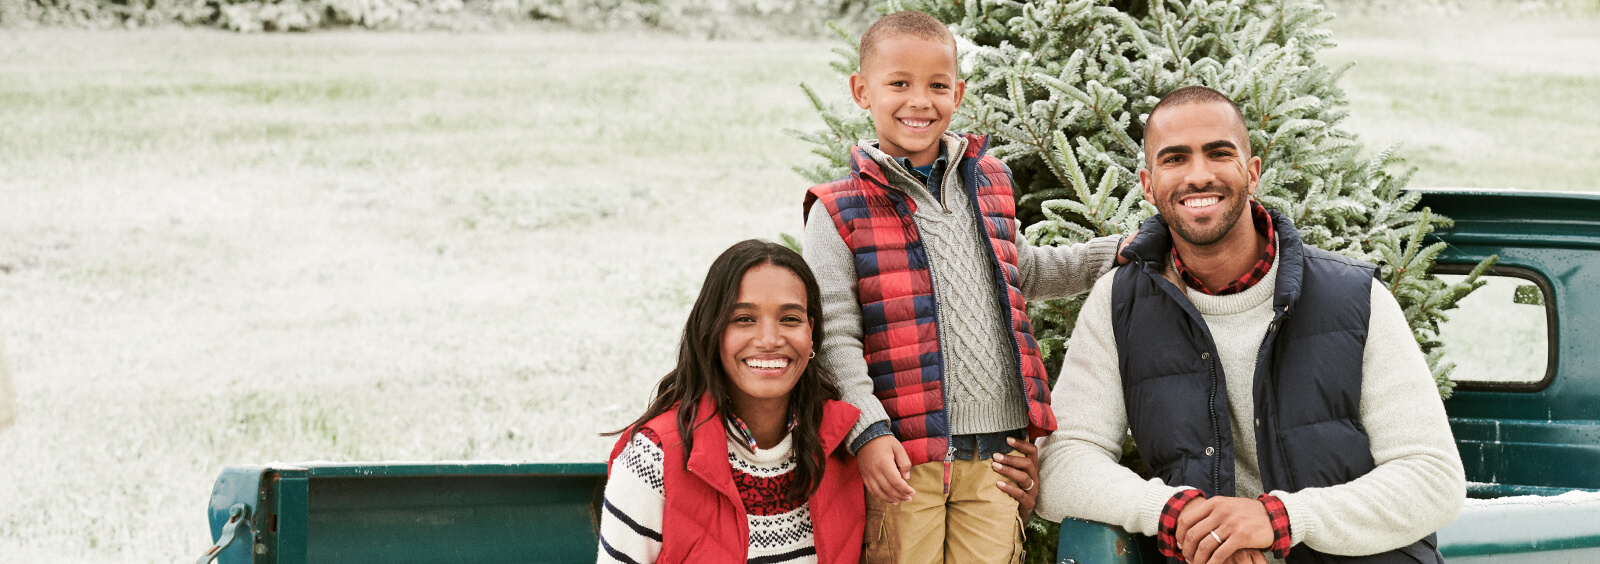 What to Pack for a Holiday Family Vacation